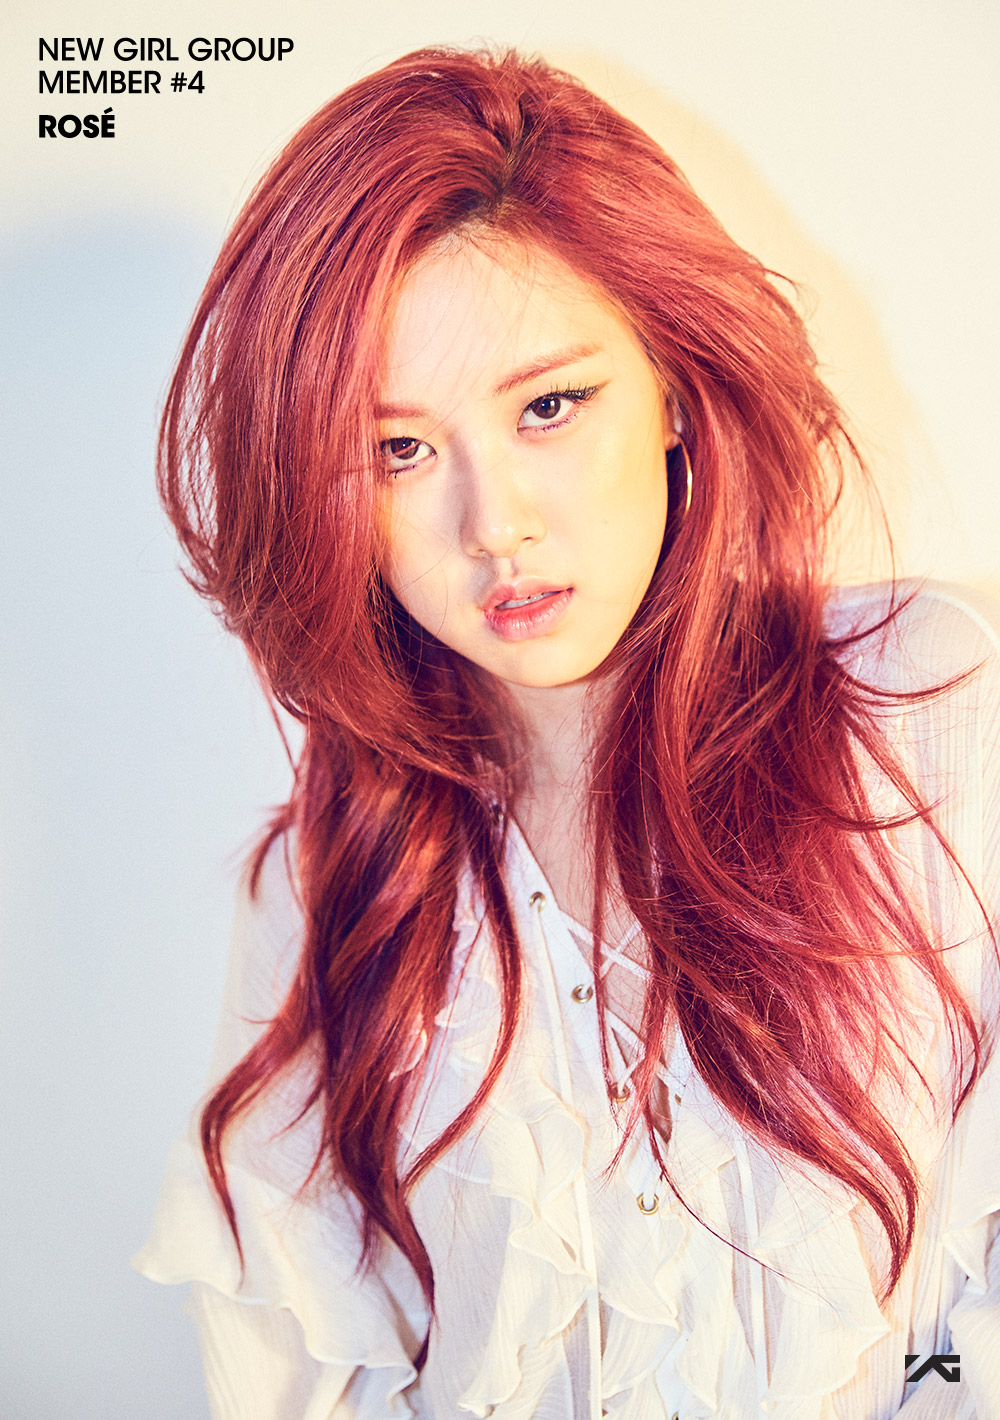 YG Exhibits Teasers For New Girl Organization Member Rosé